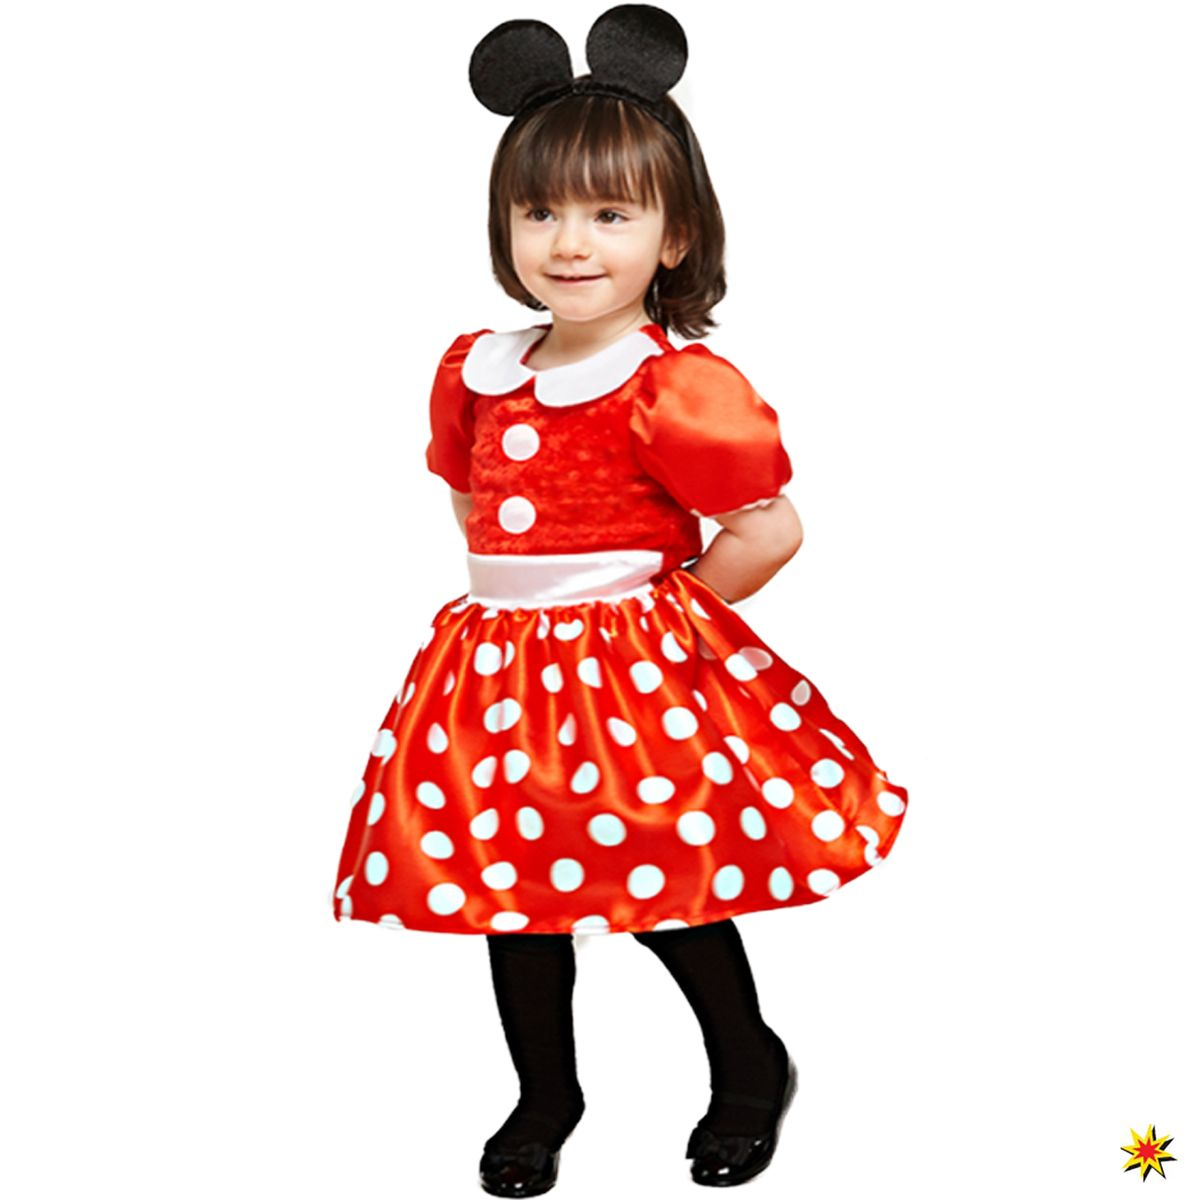 Kinder Kostum Disney Minnie Maus Kleid Grosse 12 18 Monate